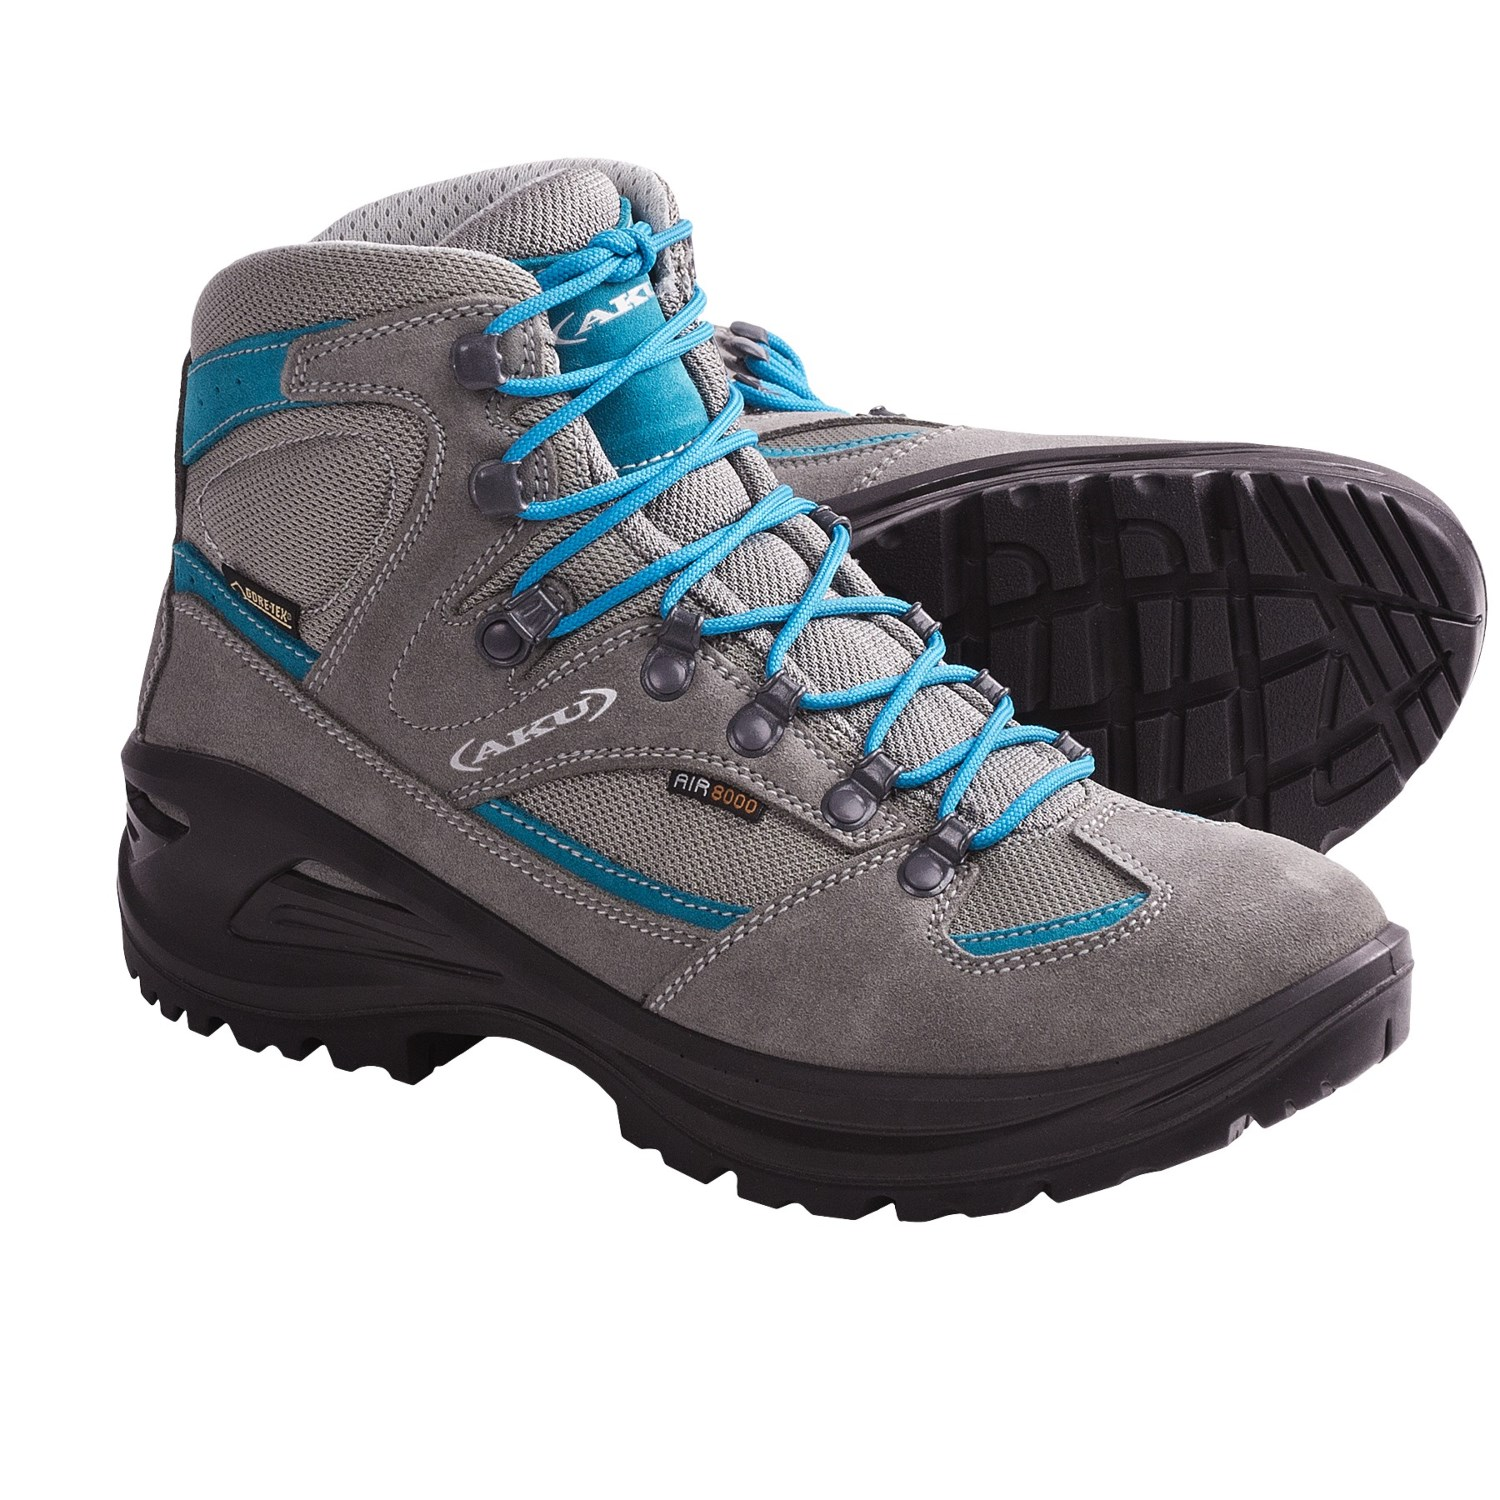 aku teton tex 174 hiking boots waterproof for